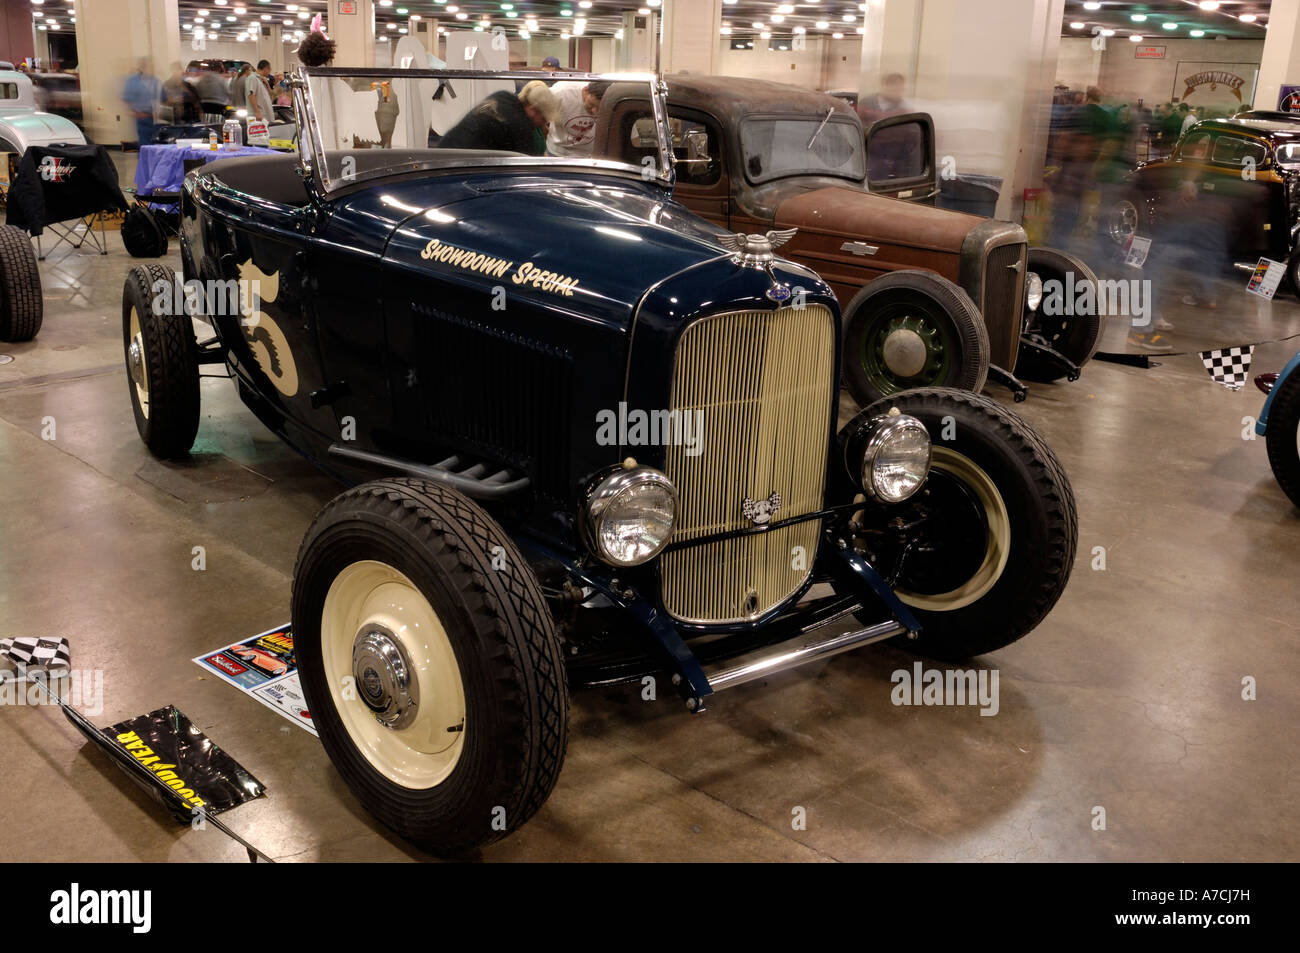 Traditional Hot Rod Stock Photos & Traditional Hot Rod Stock Images ...